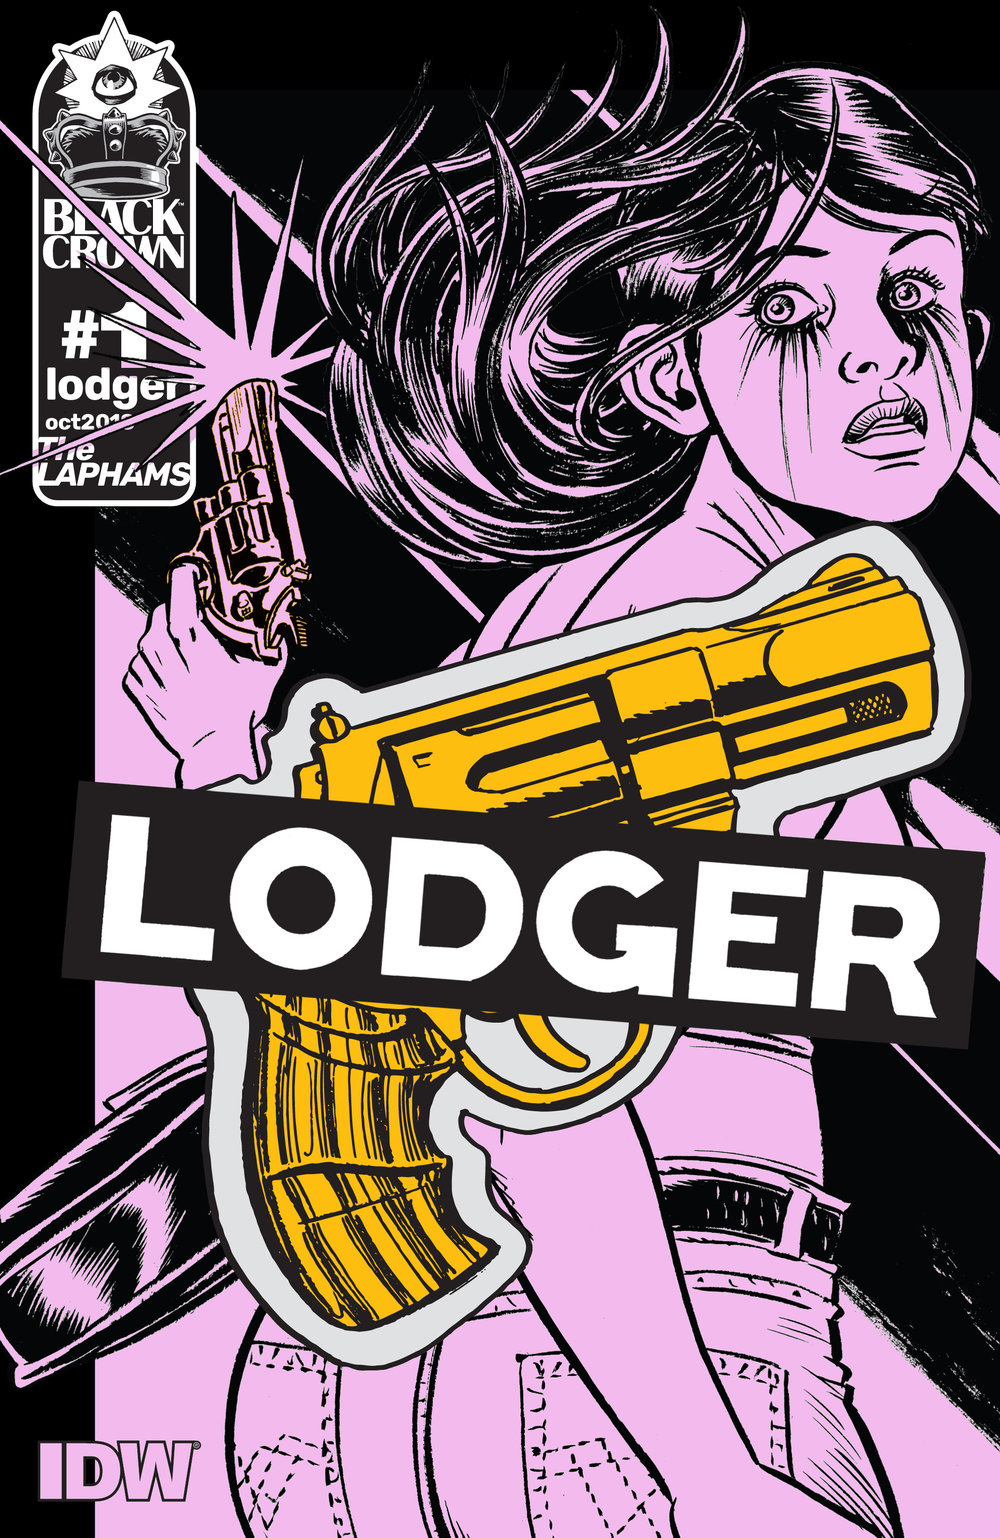 The Lodger #1  is out 10/24.